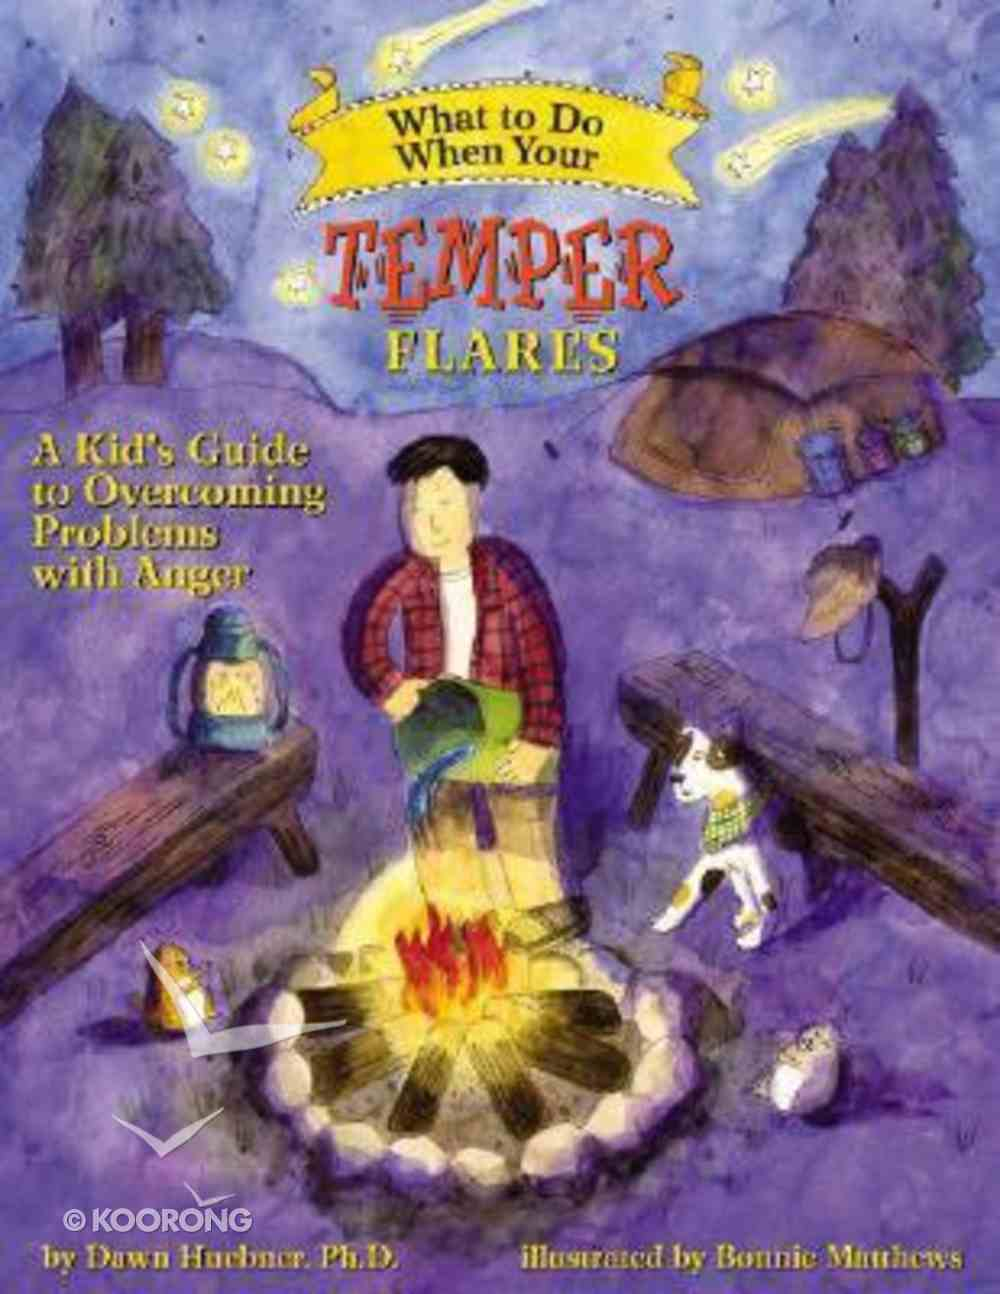 What to Do: When Your Temper Flares Paperback